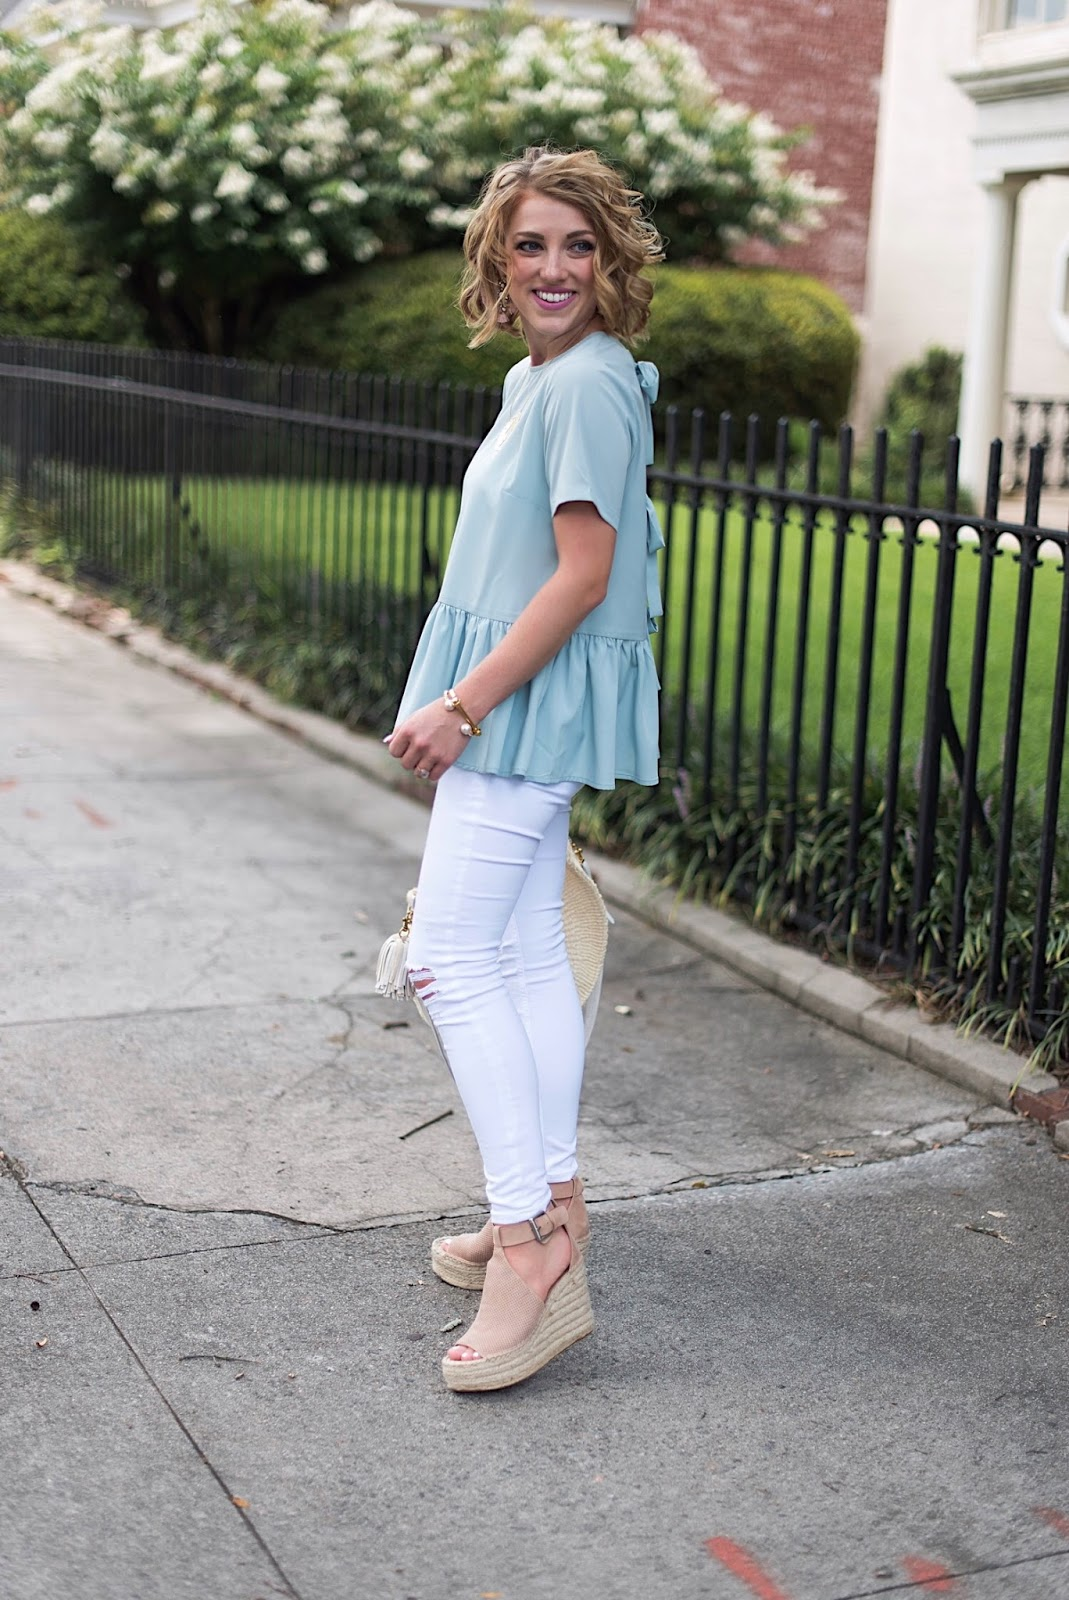 Summer Style - Click through to see more on Something Delightful blog!